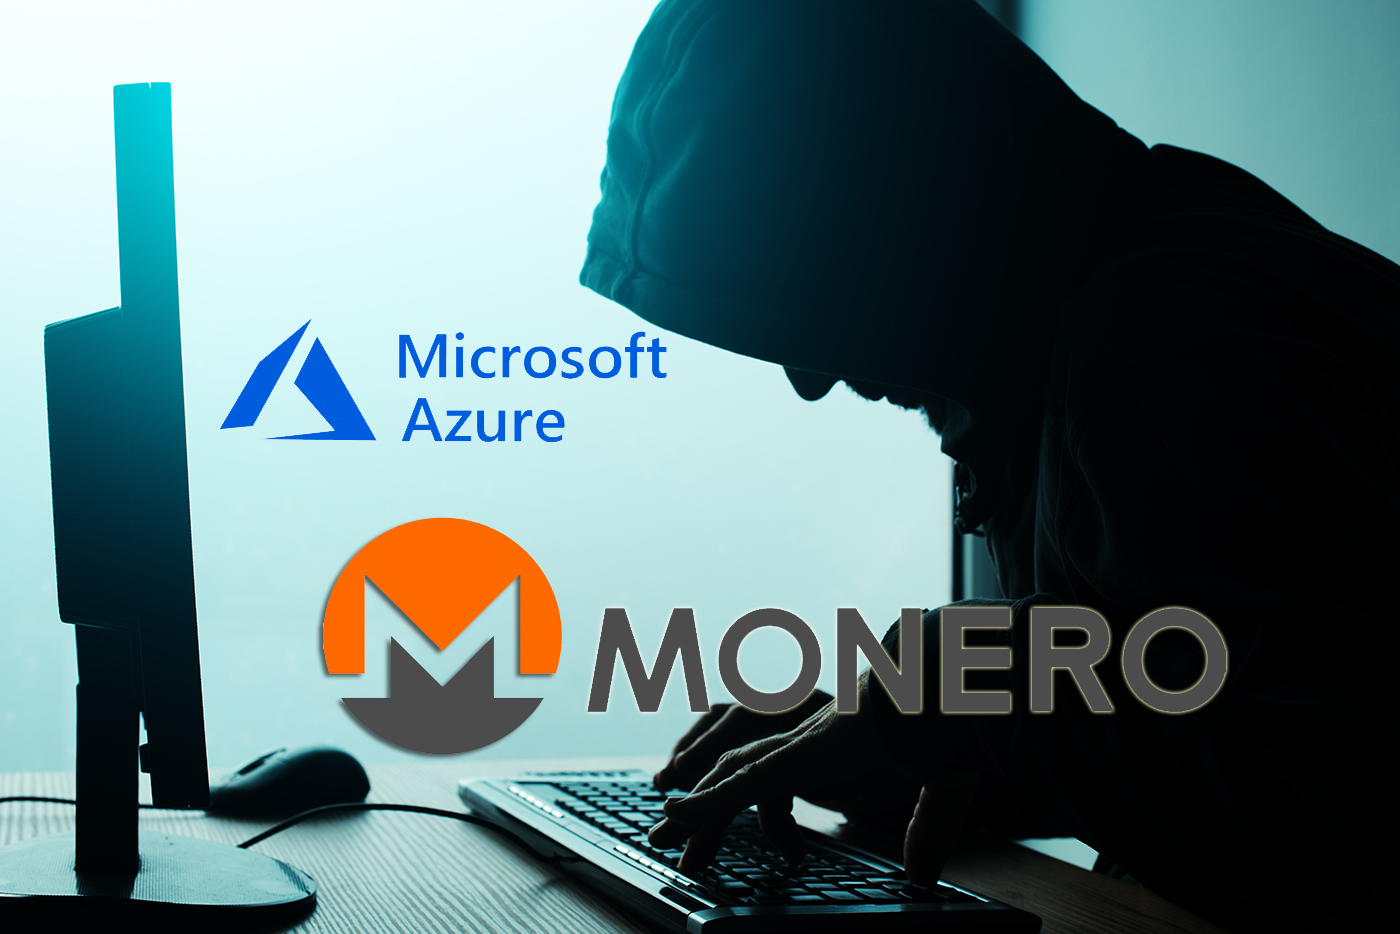 Microsoft Azure Cryptojacked To Mine Monero